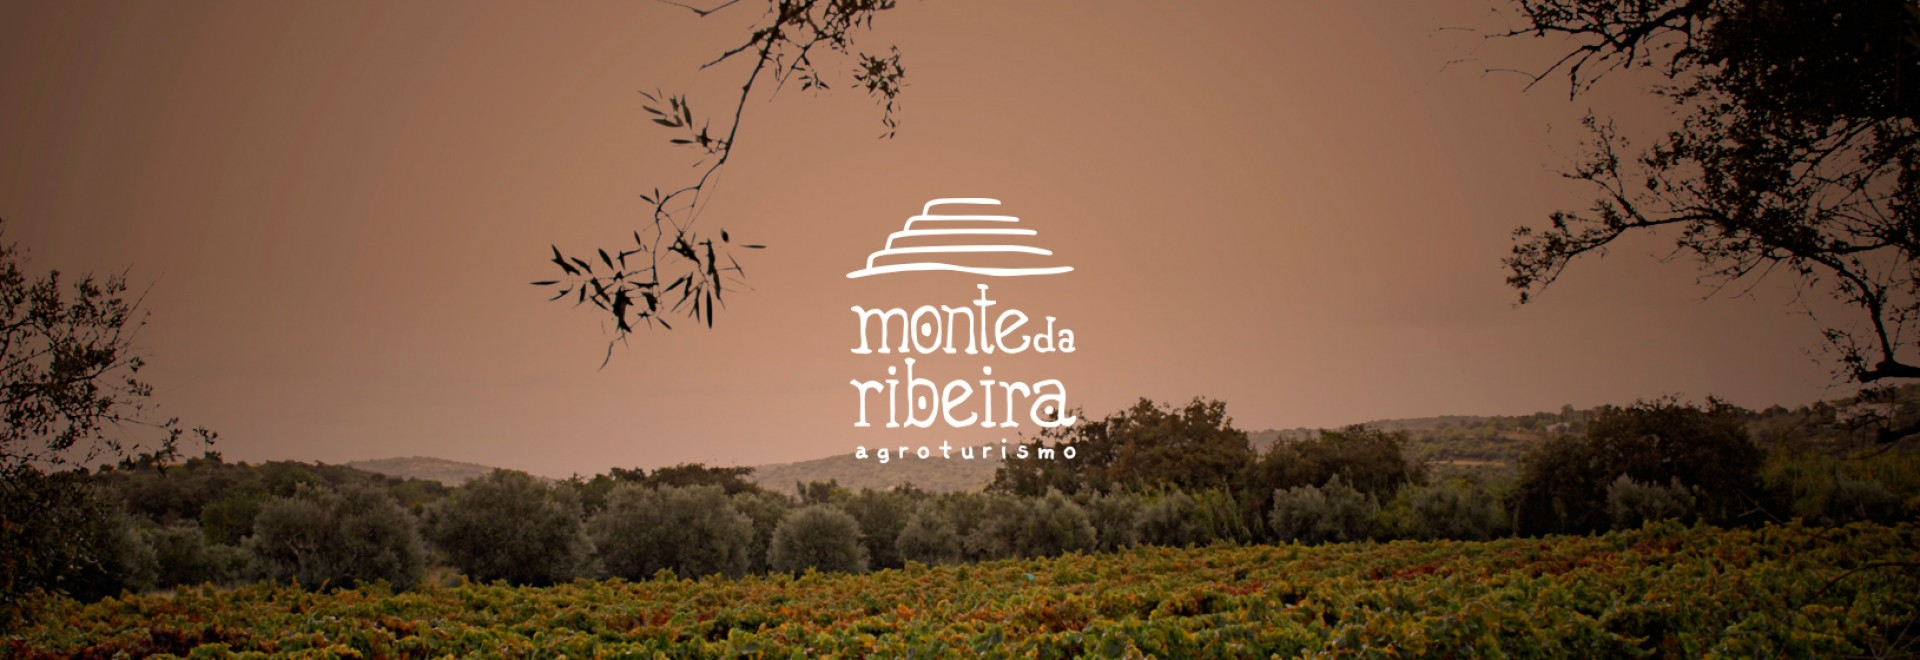 vineyard view with Monte da Ribeira logo